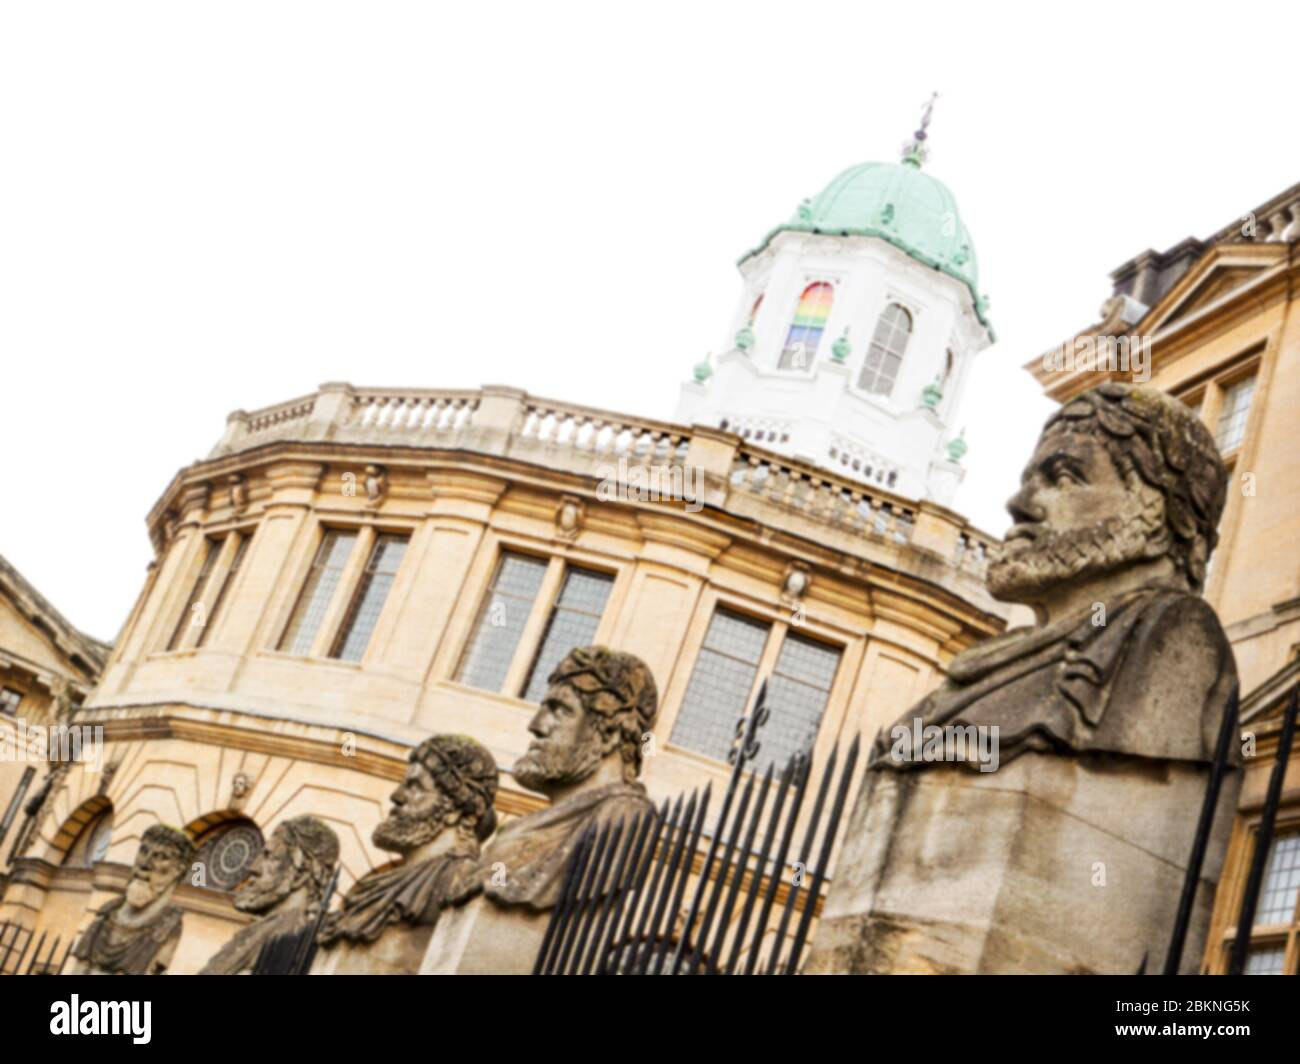 Statues in front of the iconic Sheldonian theatre in Oxford. Stock Photo